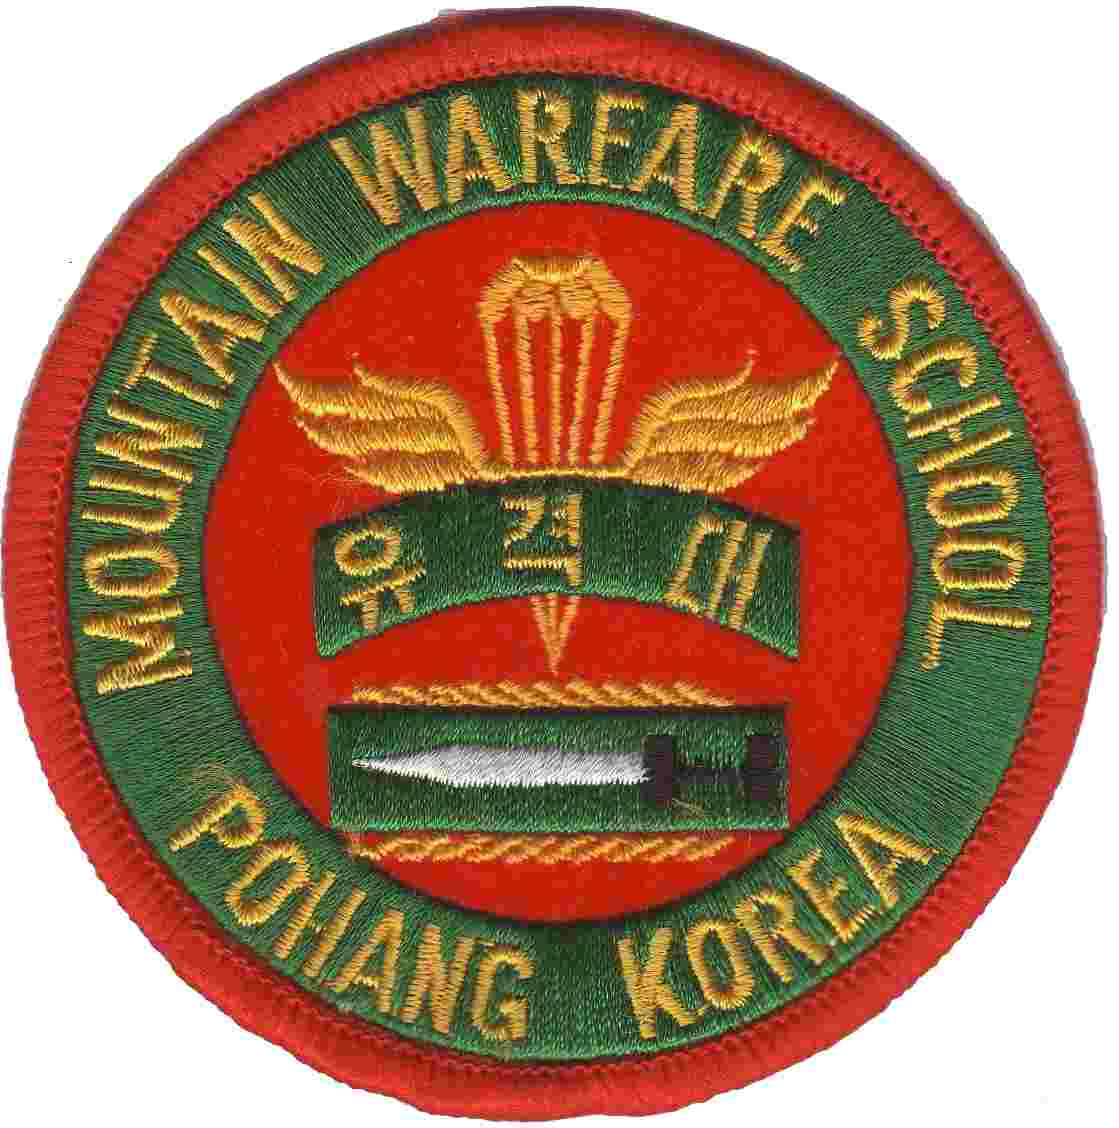 Rok Army Rangers Badge http://mountainwarfarecadre.pbworks.com/w/page/21690020/SOUTH%20KOREA